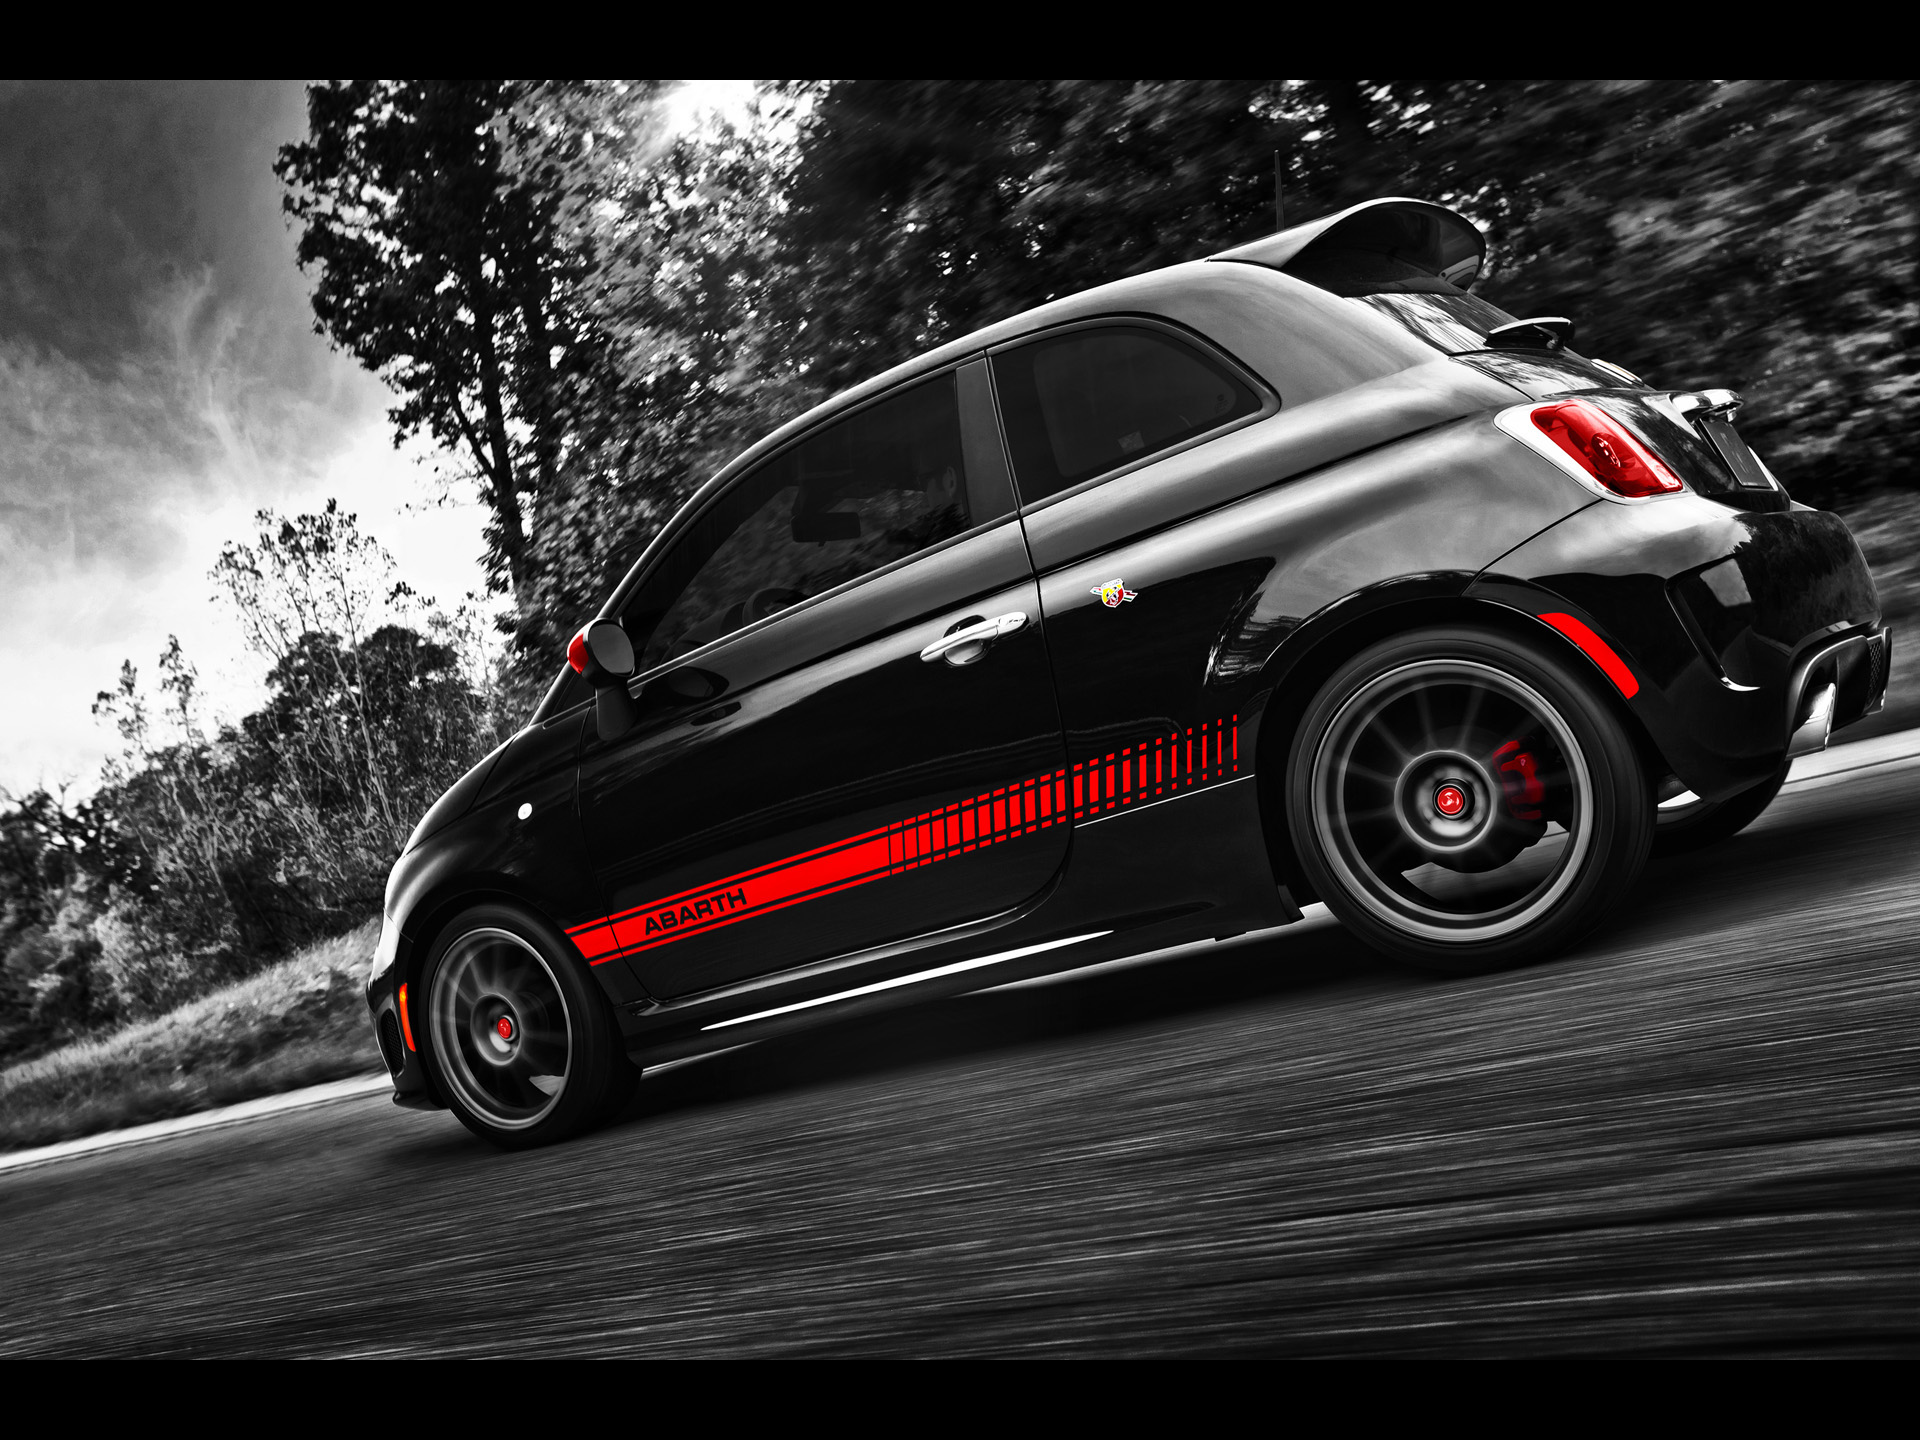 fiat 500 abarth side angle wallpapers fiat 500 abarth side angle stock photos. Black Bedroom Furniture Sets. Home Design Ideas